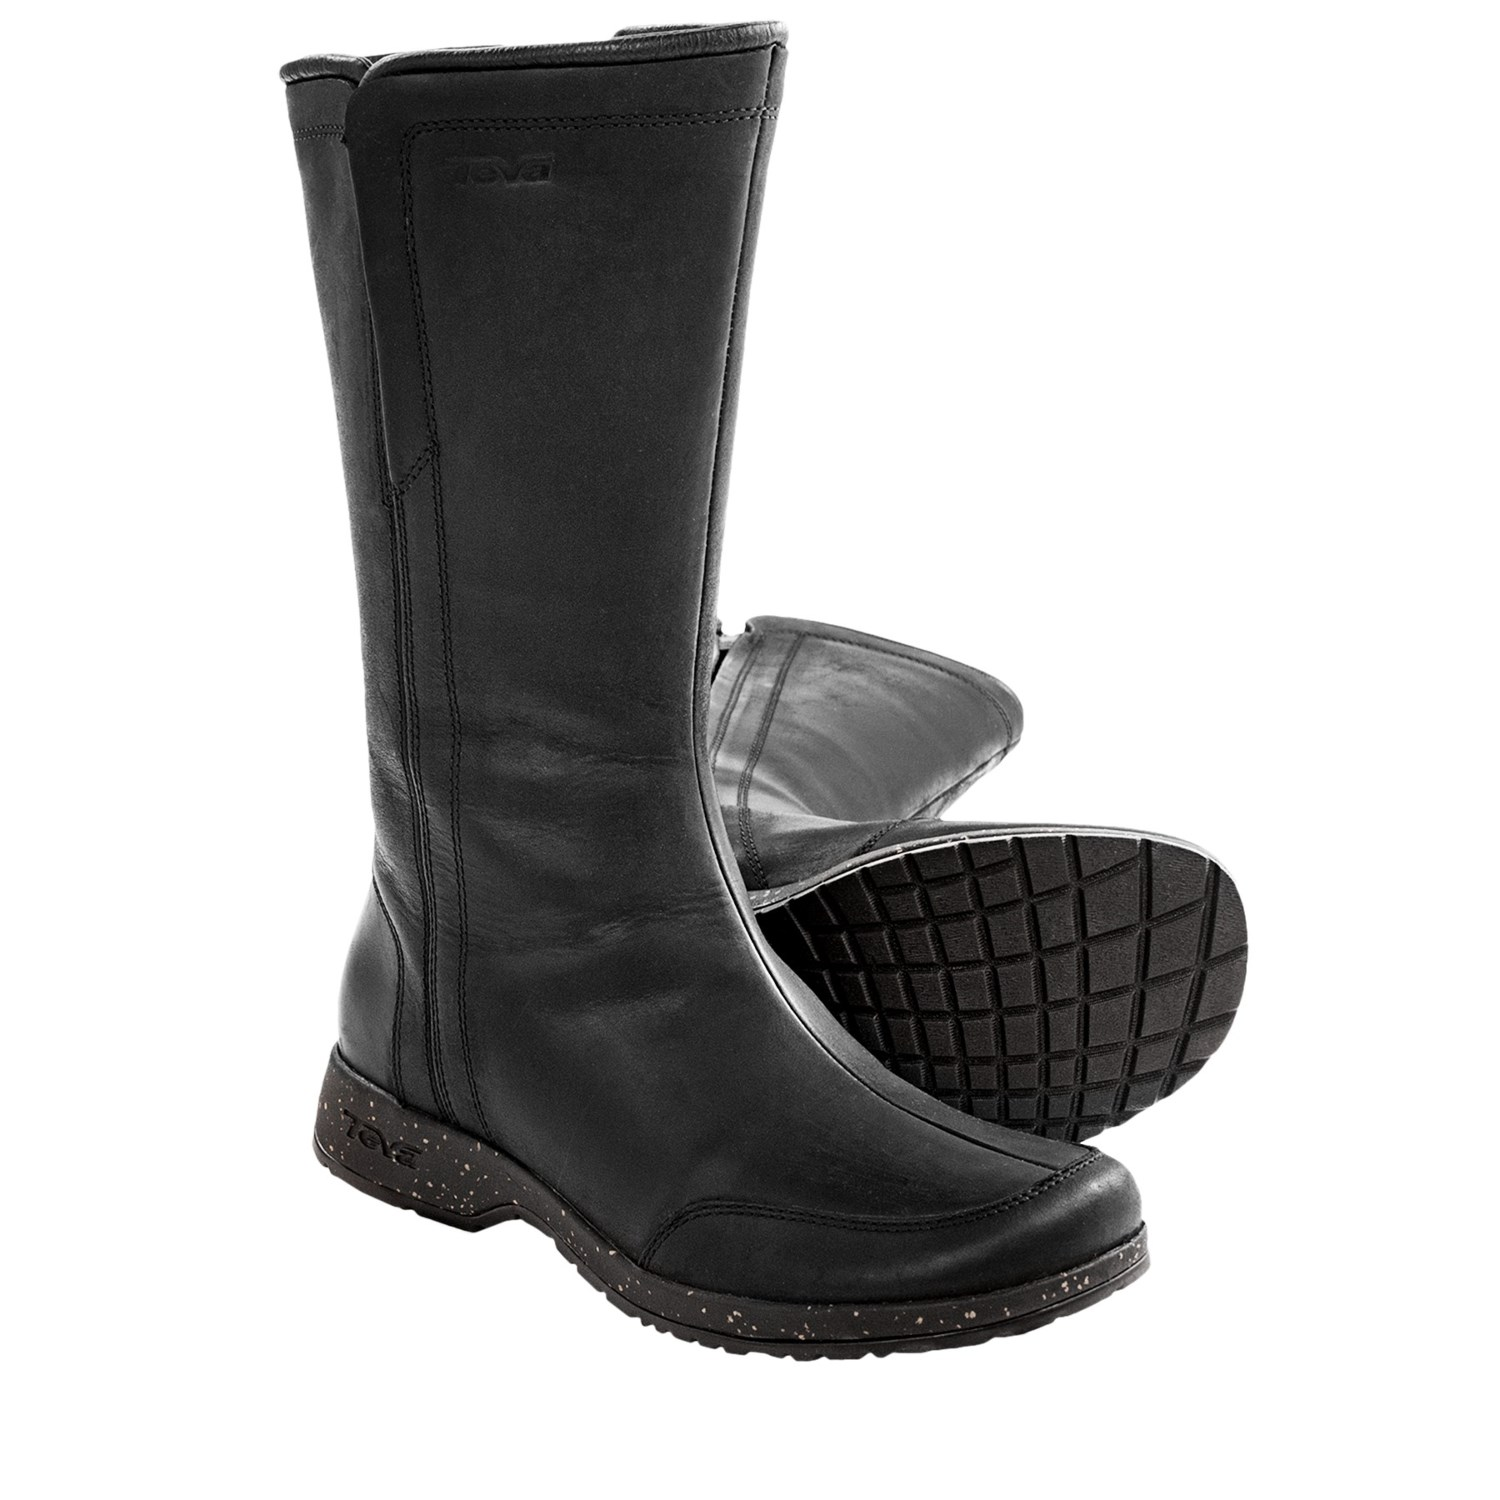 teva capistrano boots waterproofed leather for